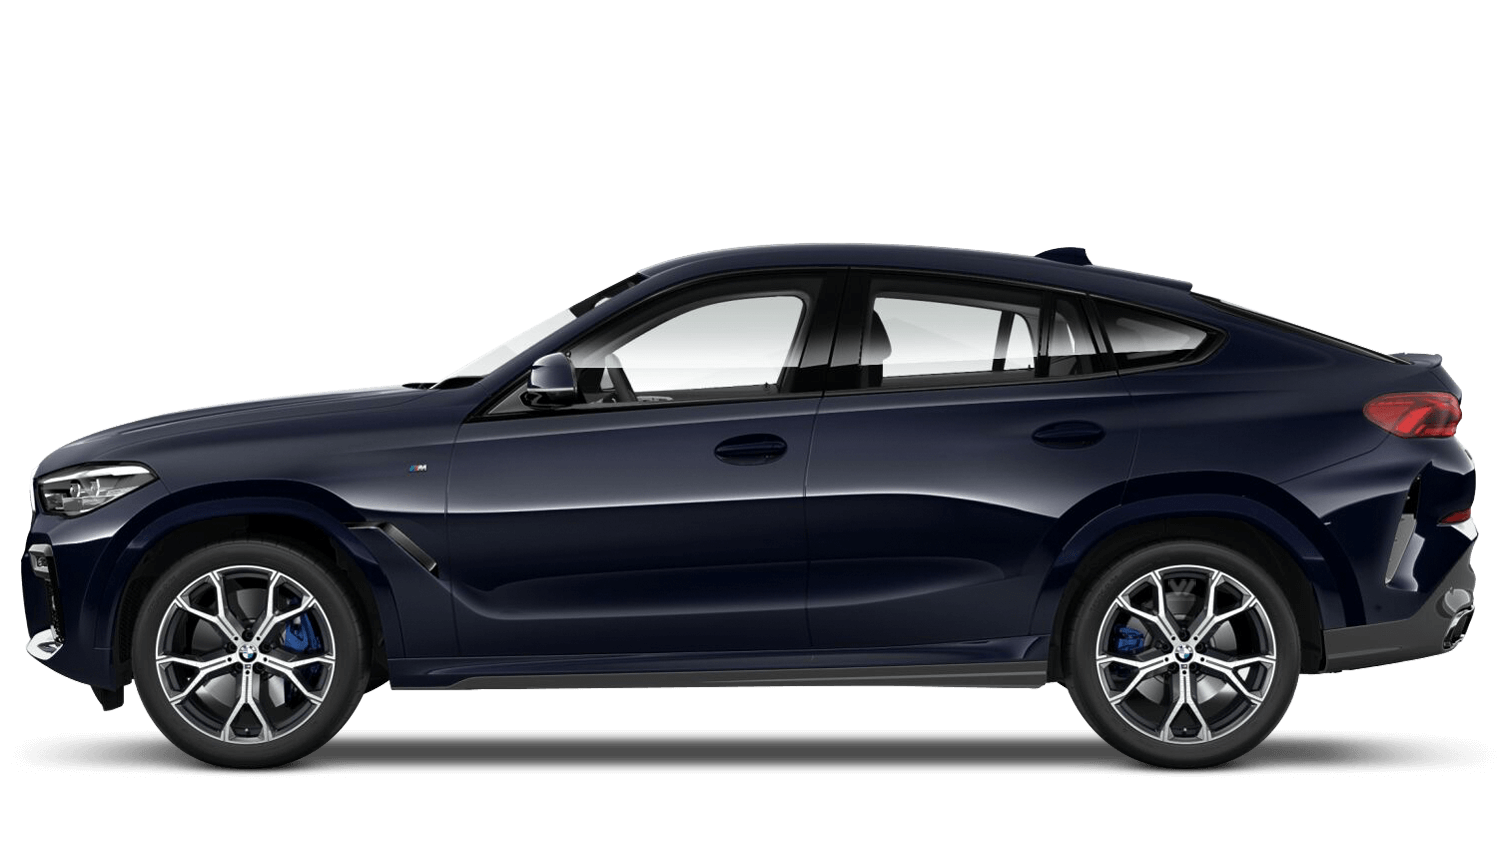 bmw x6 m sport finance available barons chandlers bmw. Black Bedroom Furniture Sets. Home Design Ideas